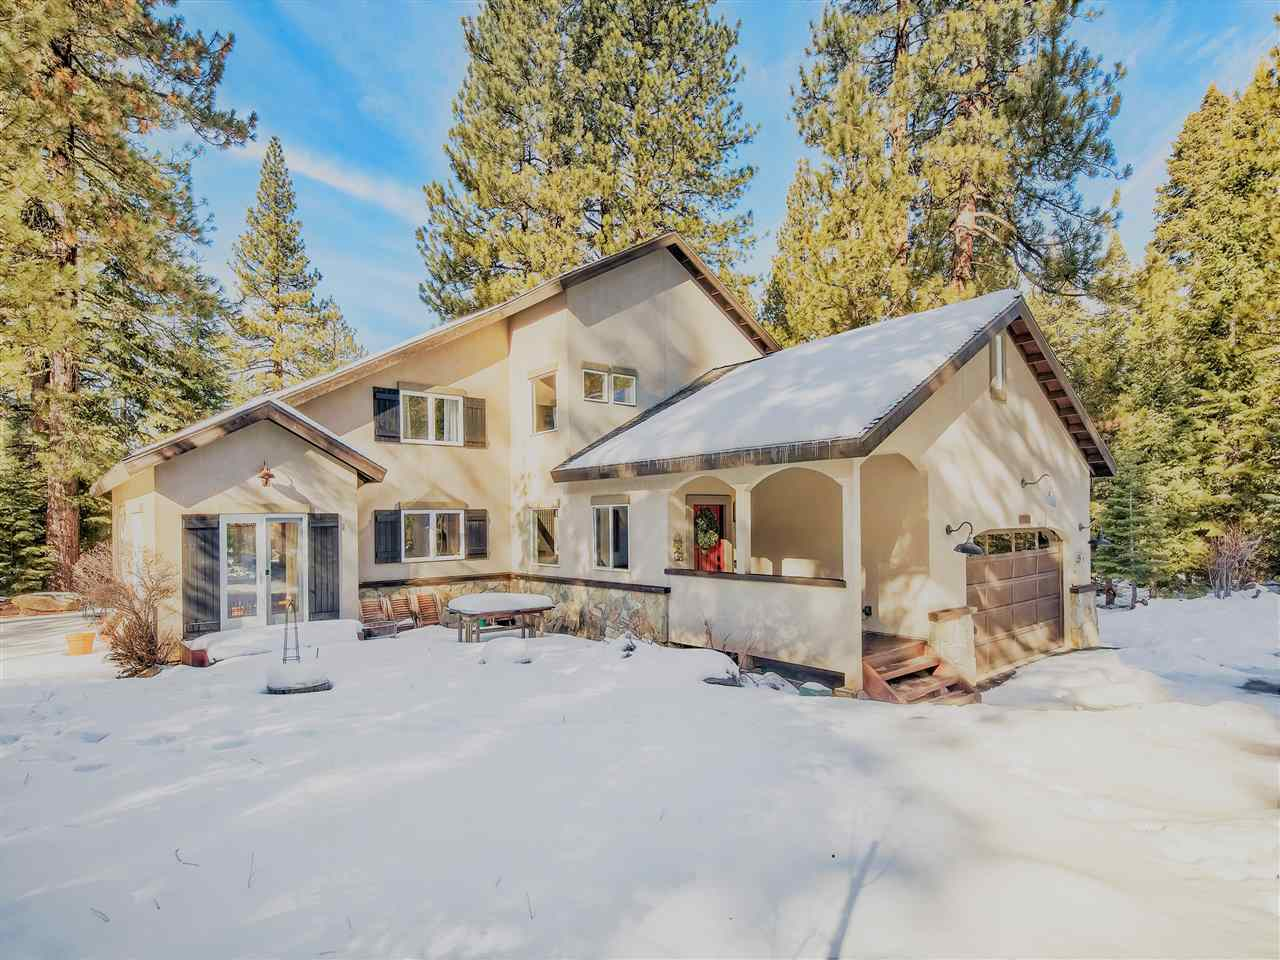 Image for 11550 Stillwater Court, Truckee, CA 96161-3228